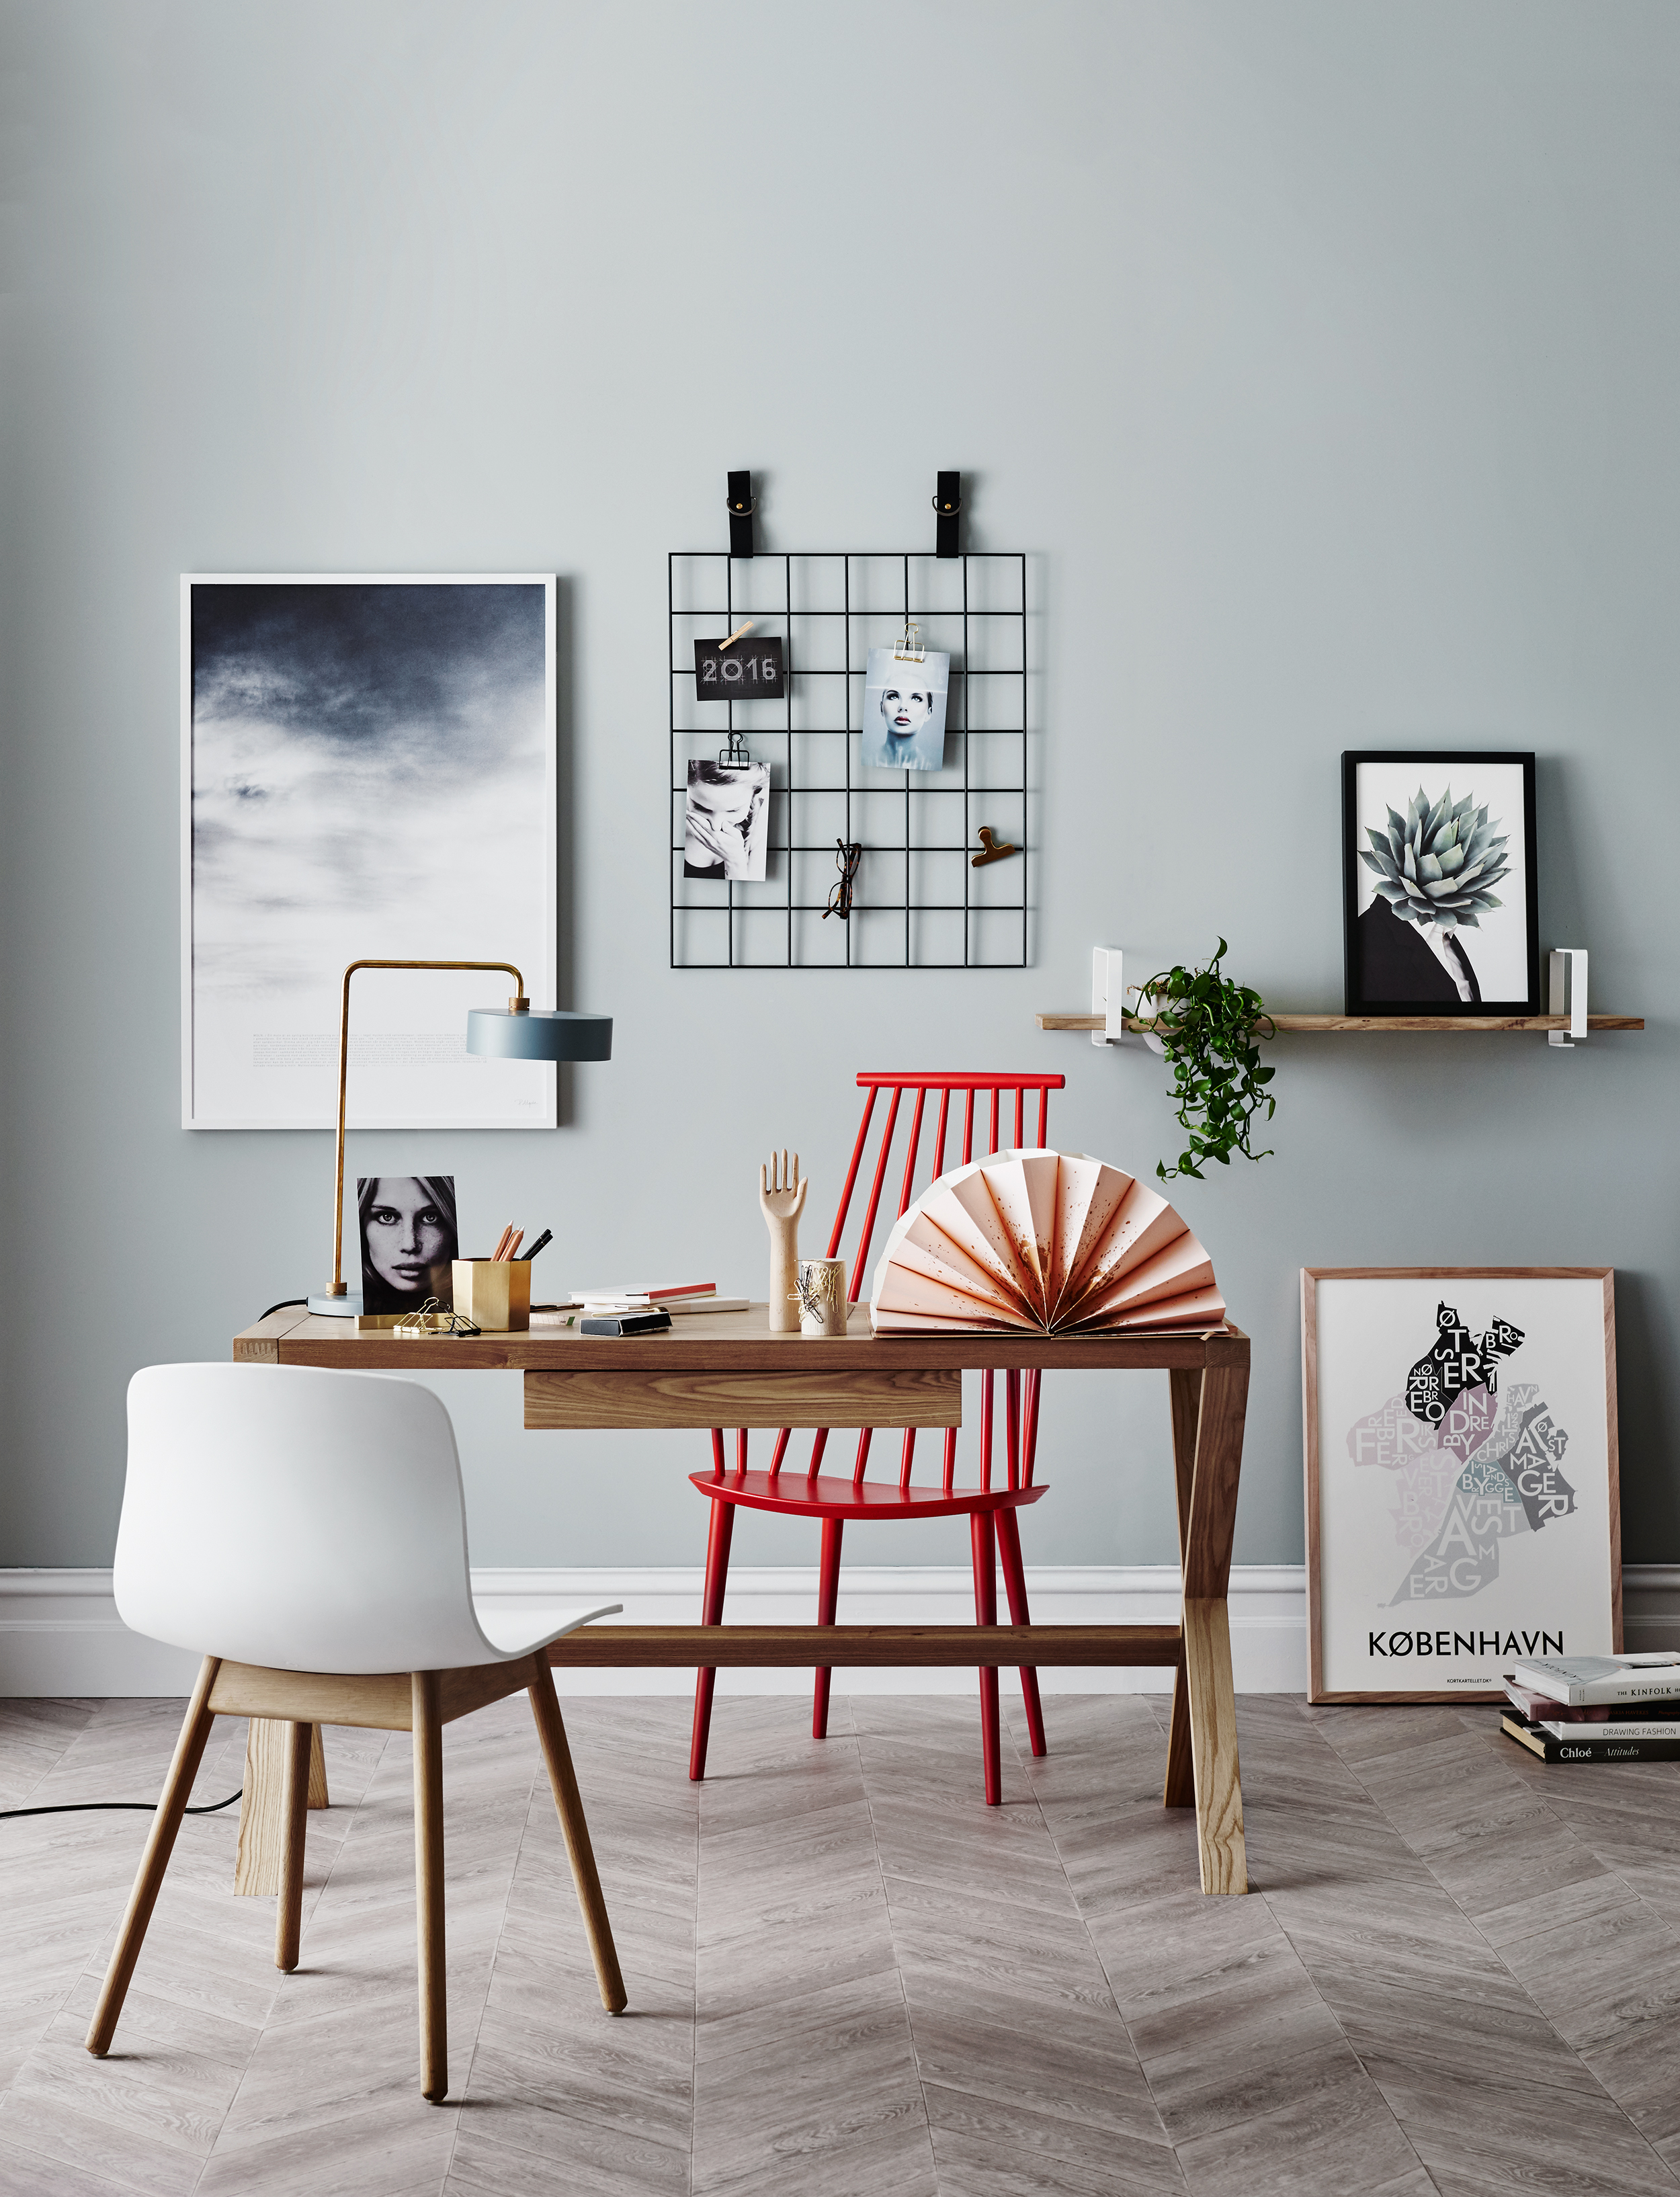 Adding a curated selection of artwork and curios offers daily inspiration. Consider what resonates with you and mix and match frames to suit. Remember affordable art can be changed regularly to suit your mood or focus. Image courtesy of  Norsu Interiors . Styling:  Michelle Halford , Pic: Lisa Cohen .